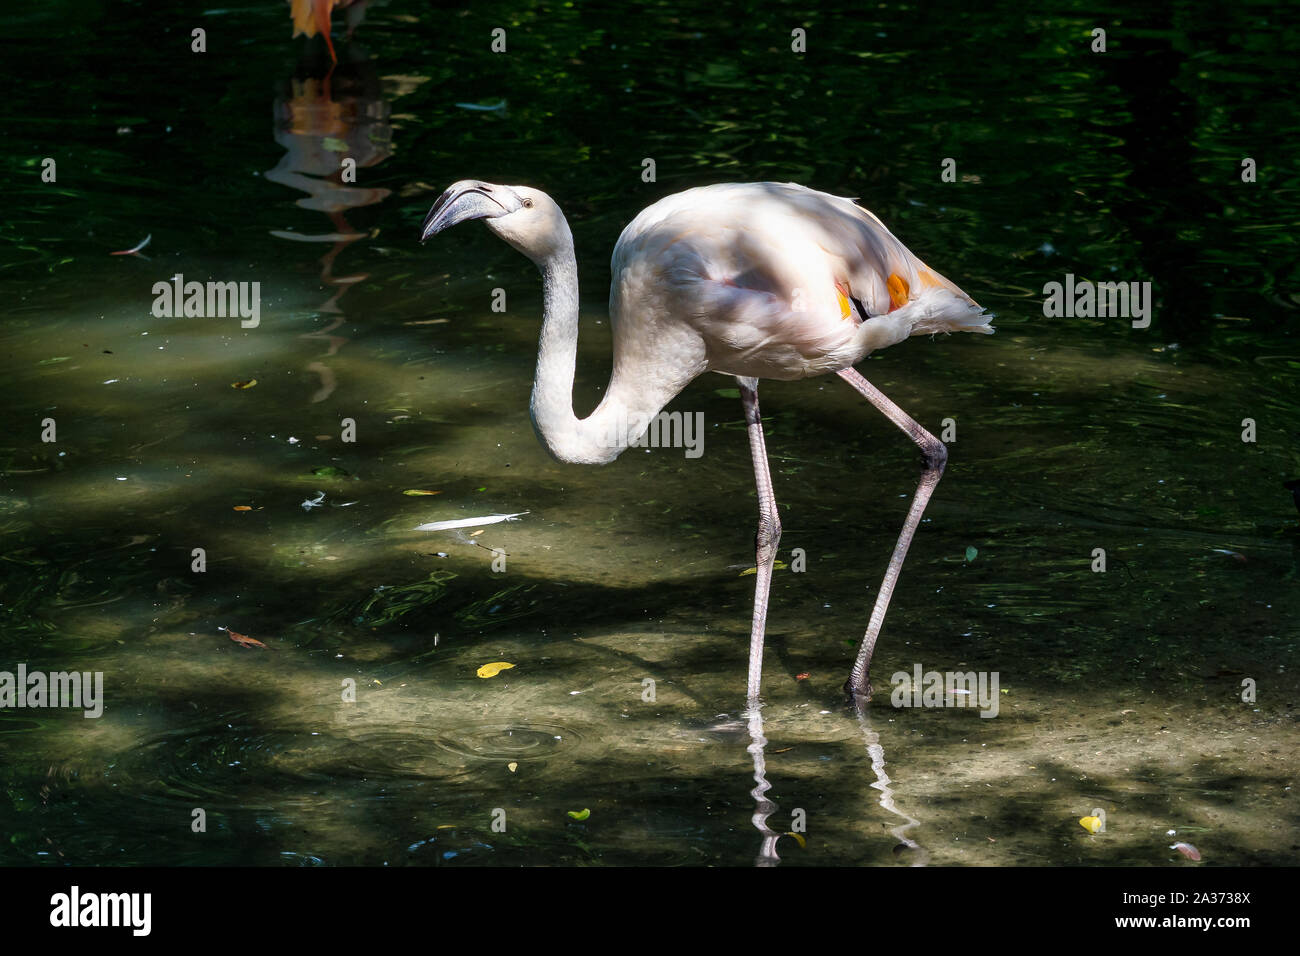 The American flamingo, Phoenicopterus ruber is a large species of flamingo, also known as the Caribbean flamingo. Stock Photo